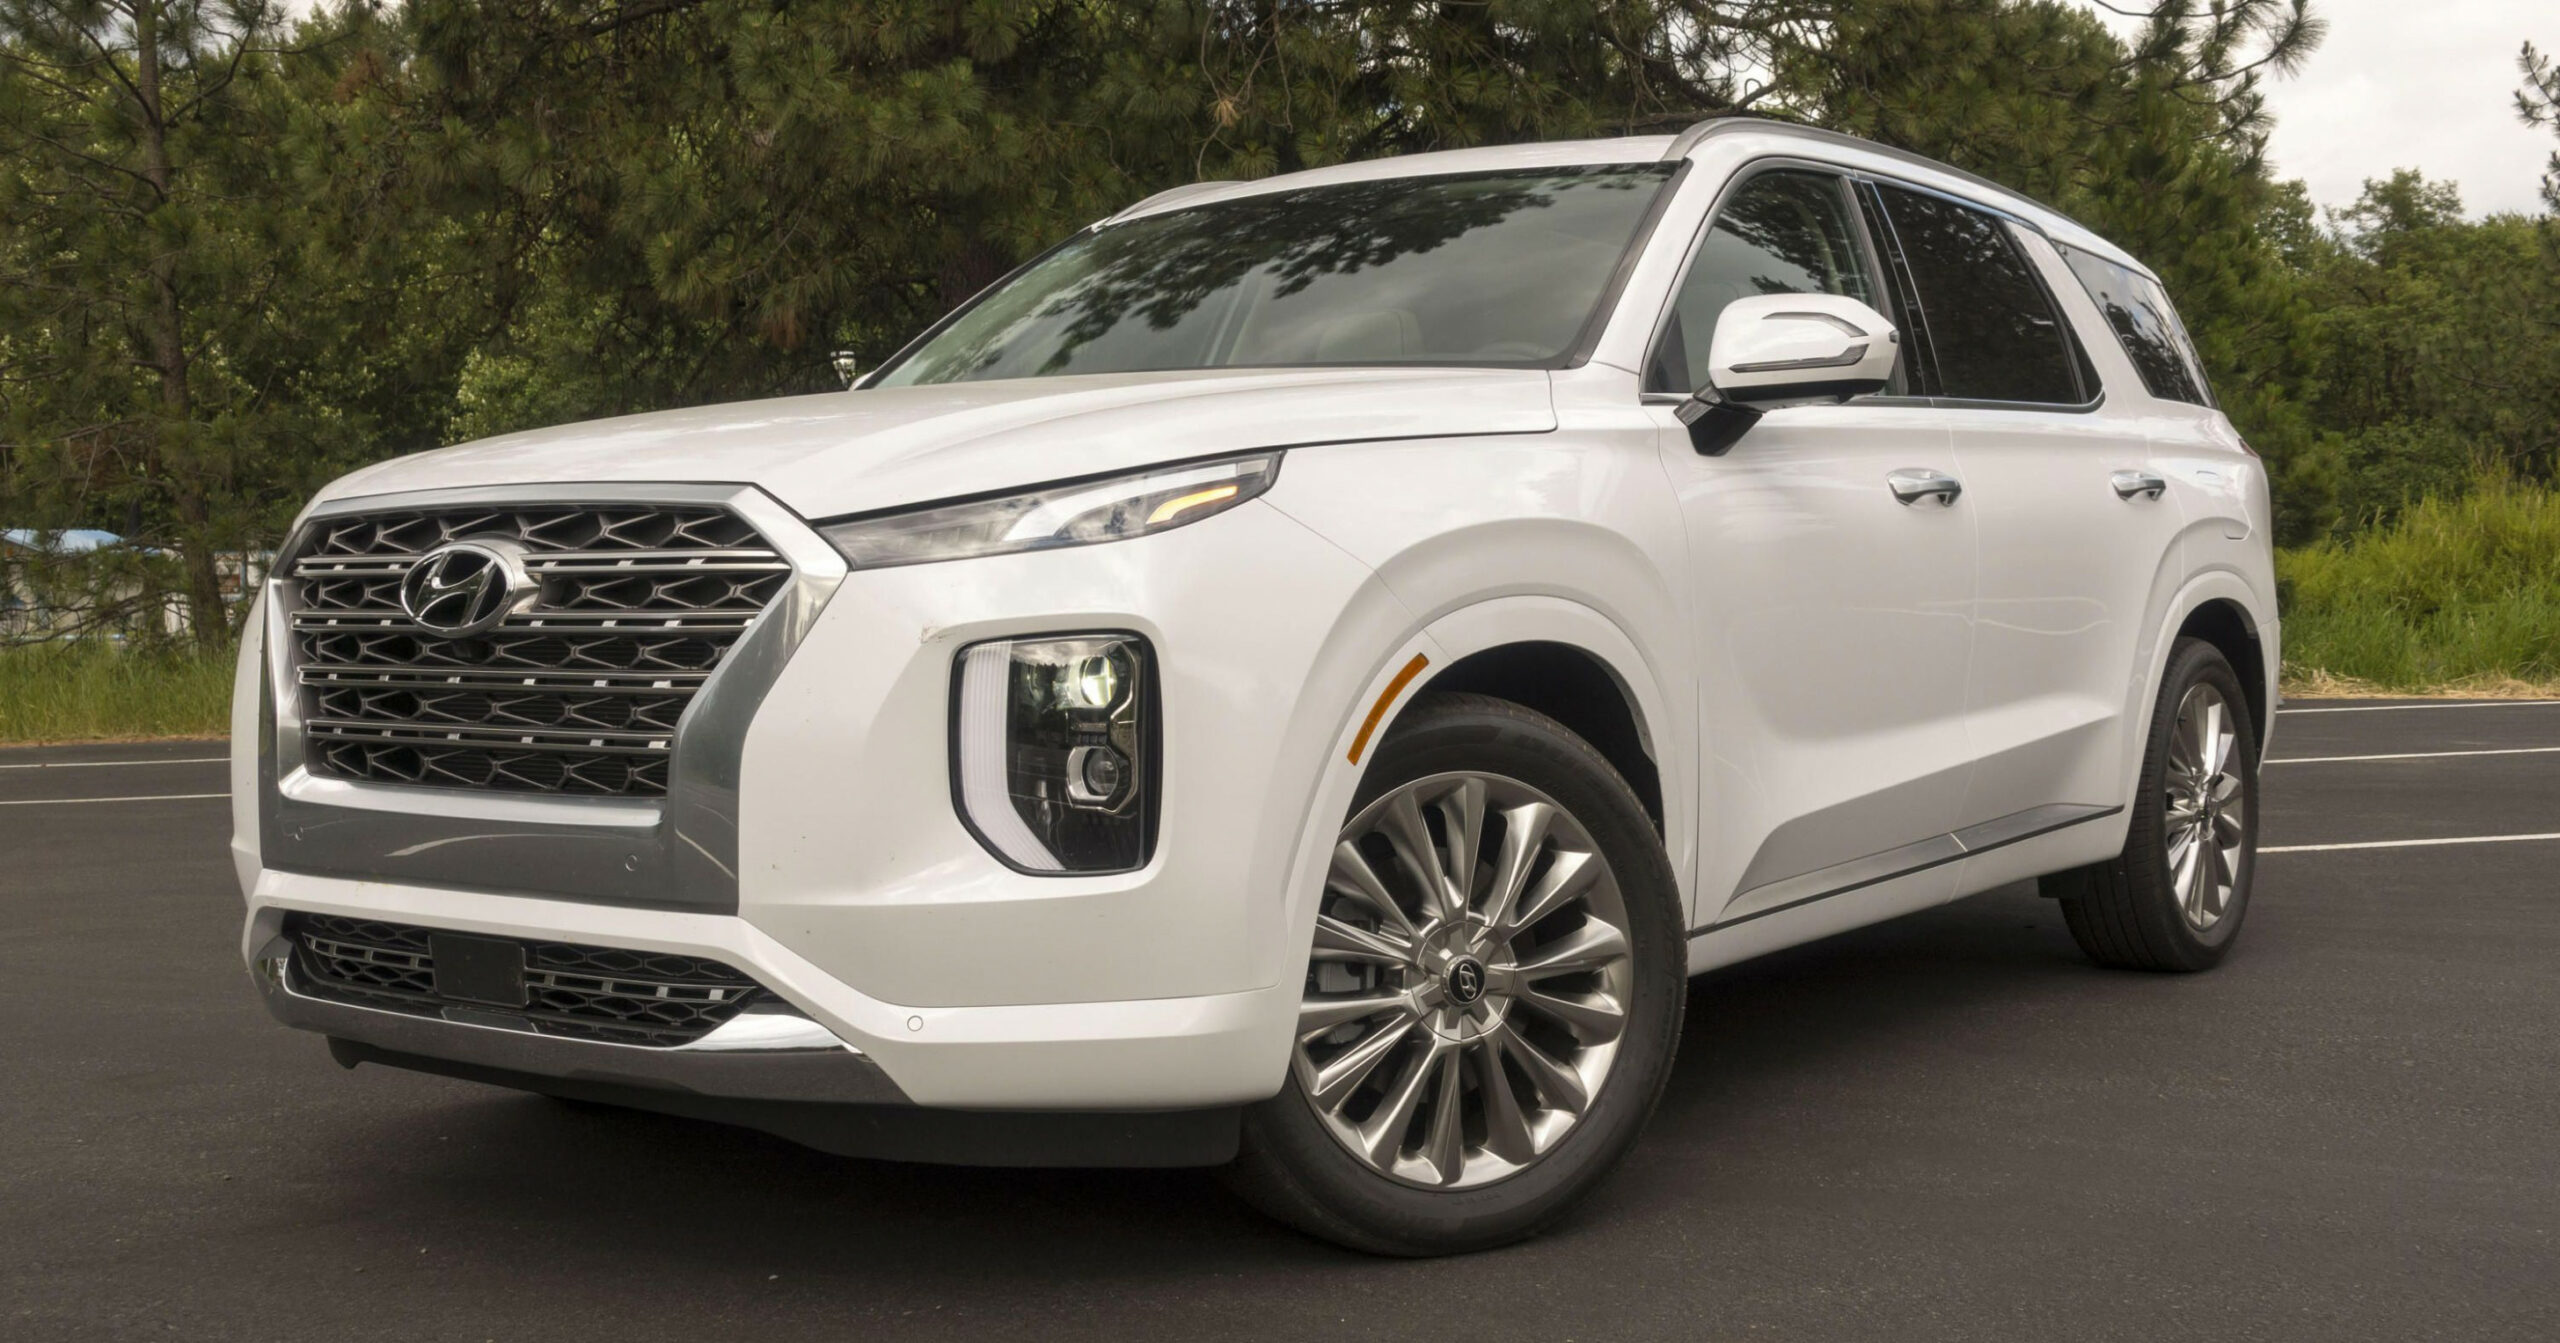 7 Hyundai Palisade first drive review: A midsize SUV that's big ...